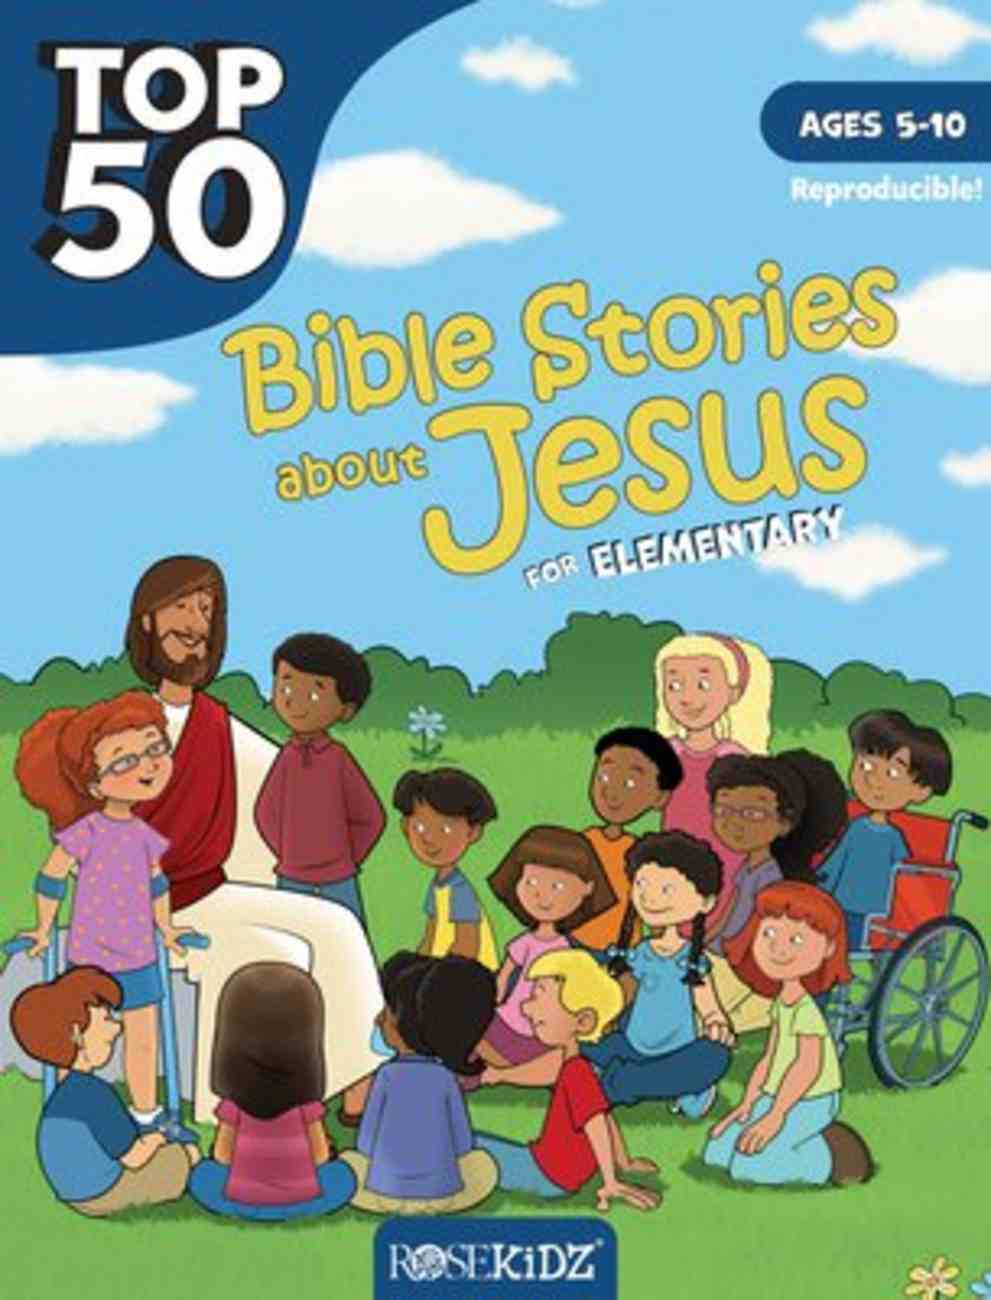 Top 50 Bible Stories About Jesus For Elementary (Ages 5-10) (Rosekidz Top 50 Series) Paperback